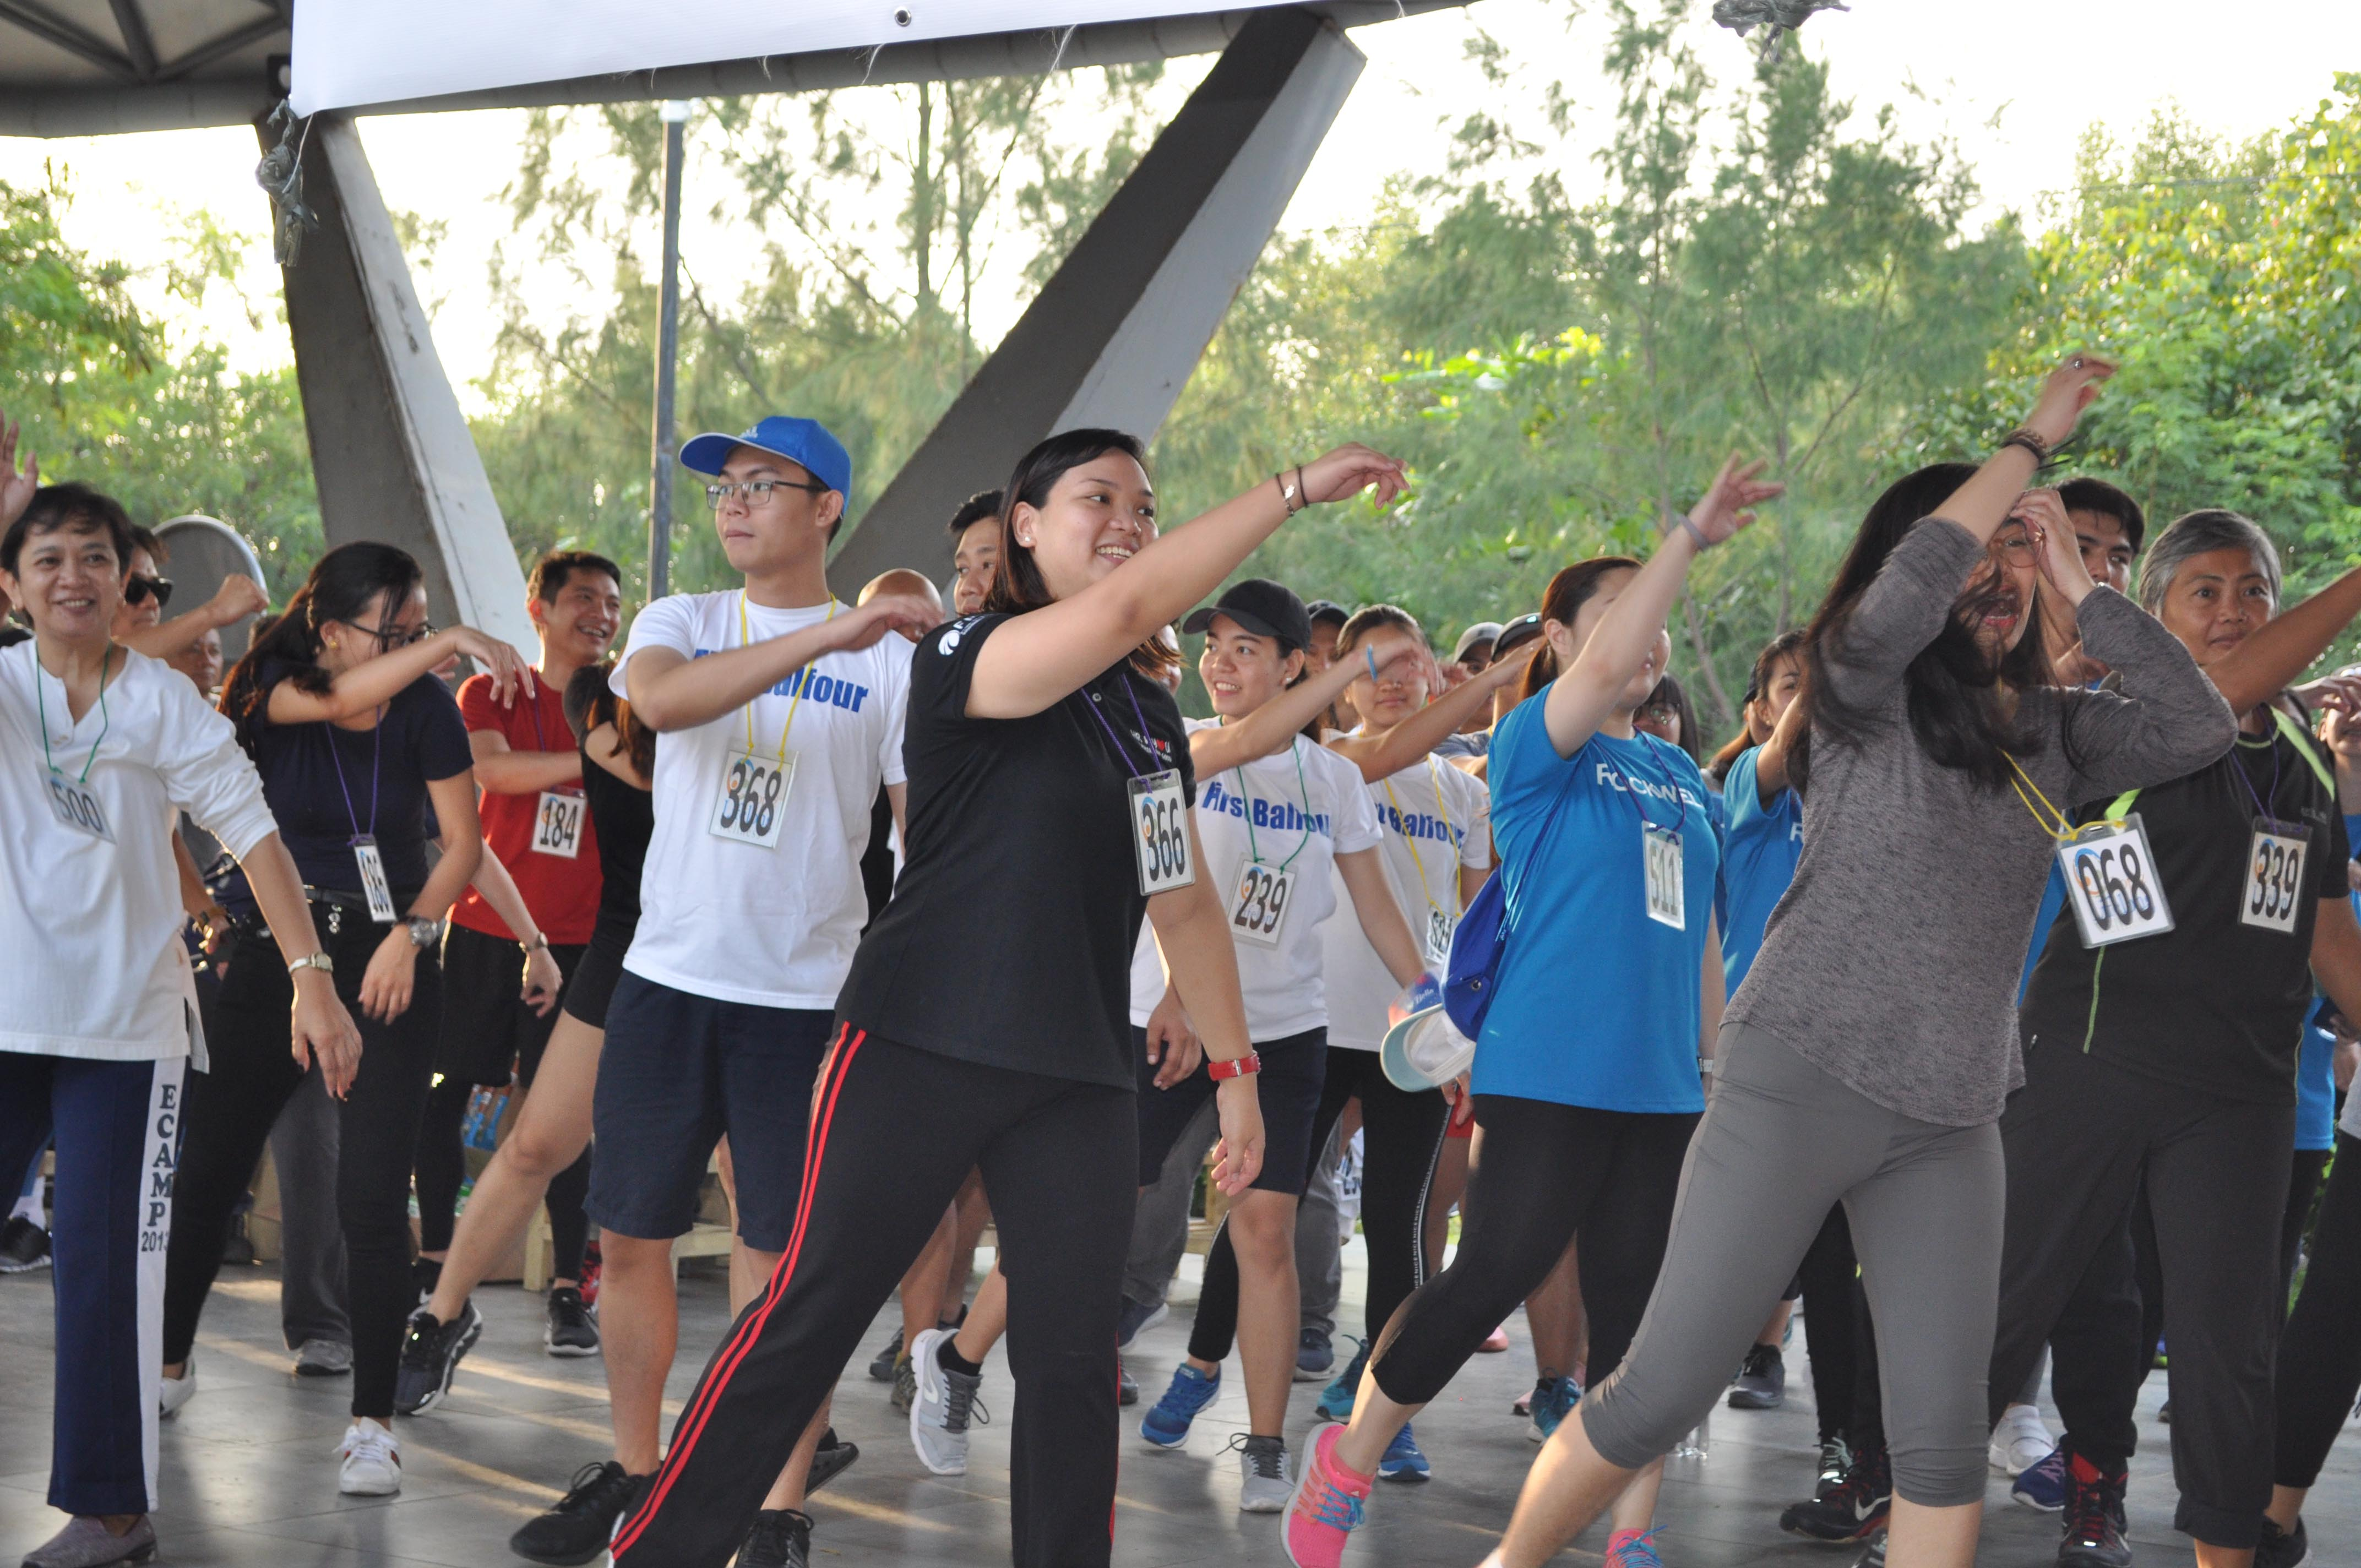 Kapamilya that exercise together